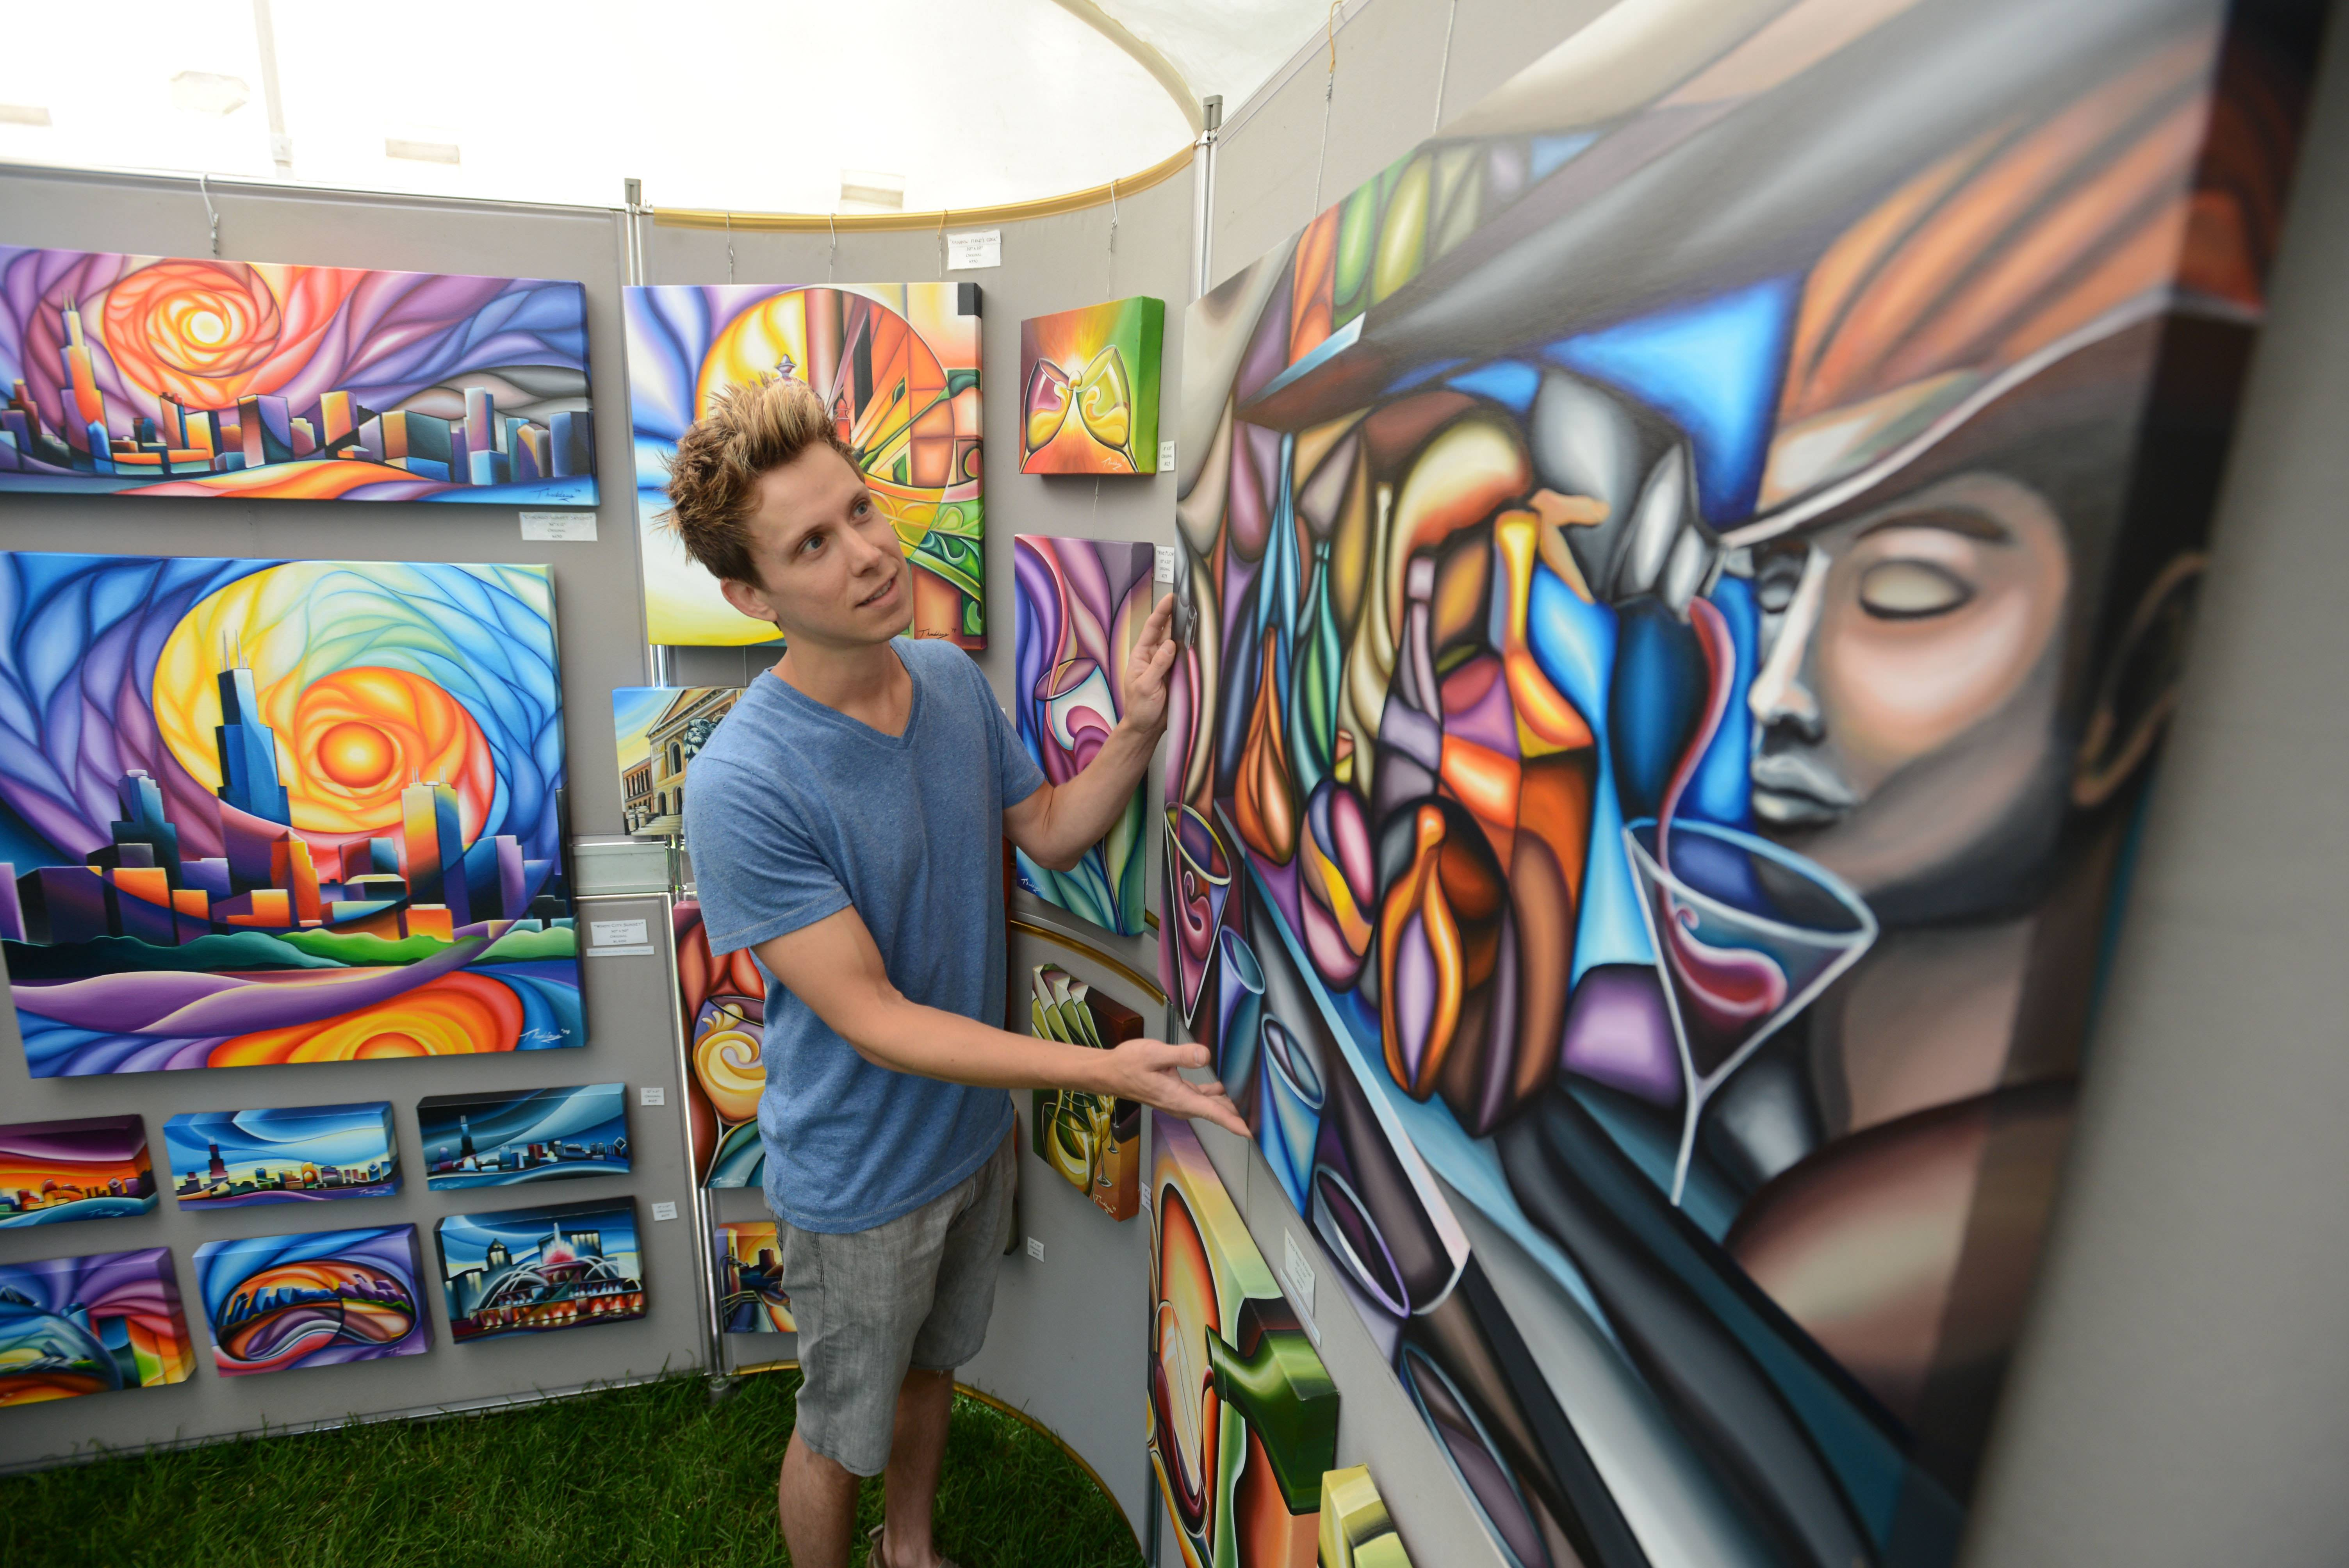 Peter Thaddeus, of Warrenville, adjusts his painting at the The Art in Bloom festival Saturday at Cantigny Park in Wheaton. The event included a juried art show with exhibiting artists, activities and crafts for kids, demonstrations, live music and food.